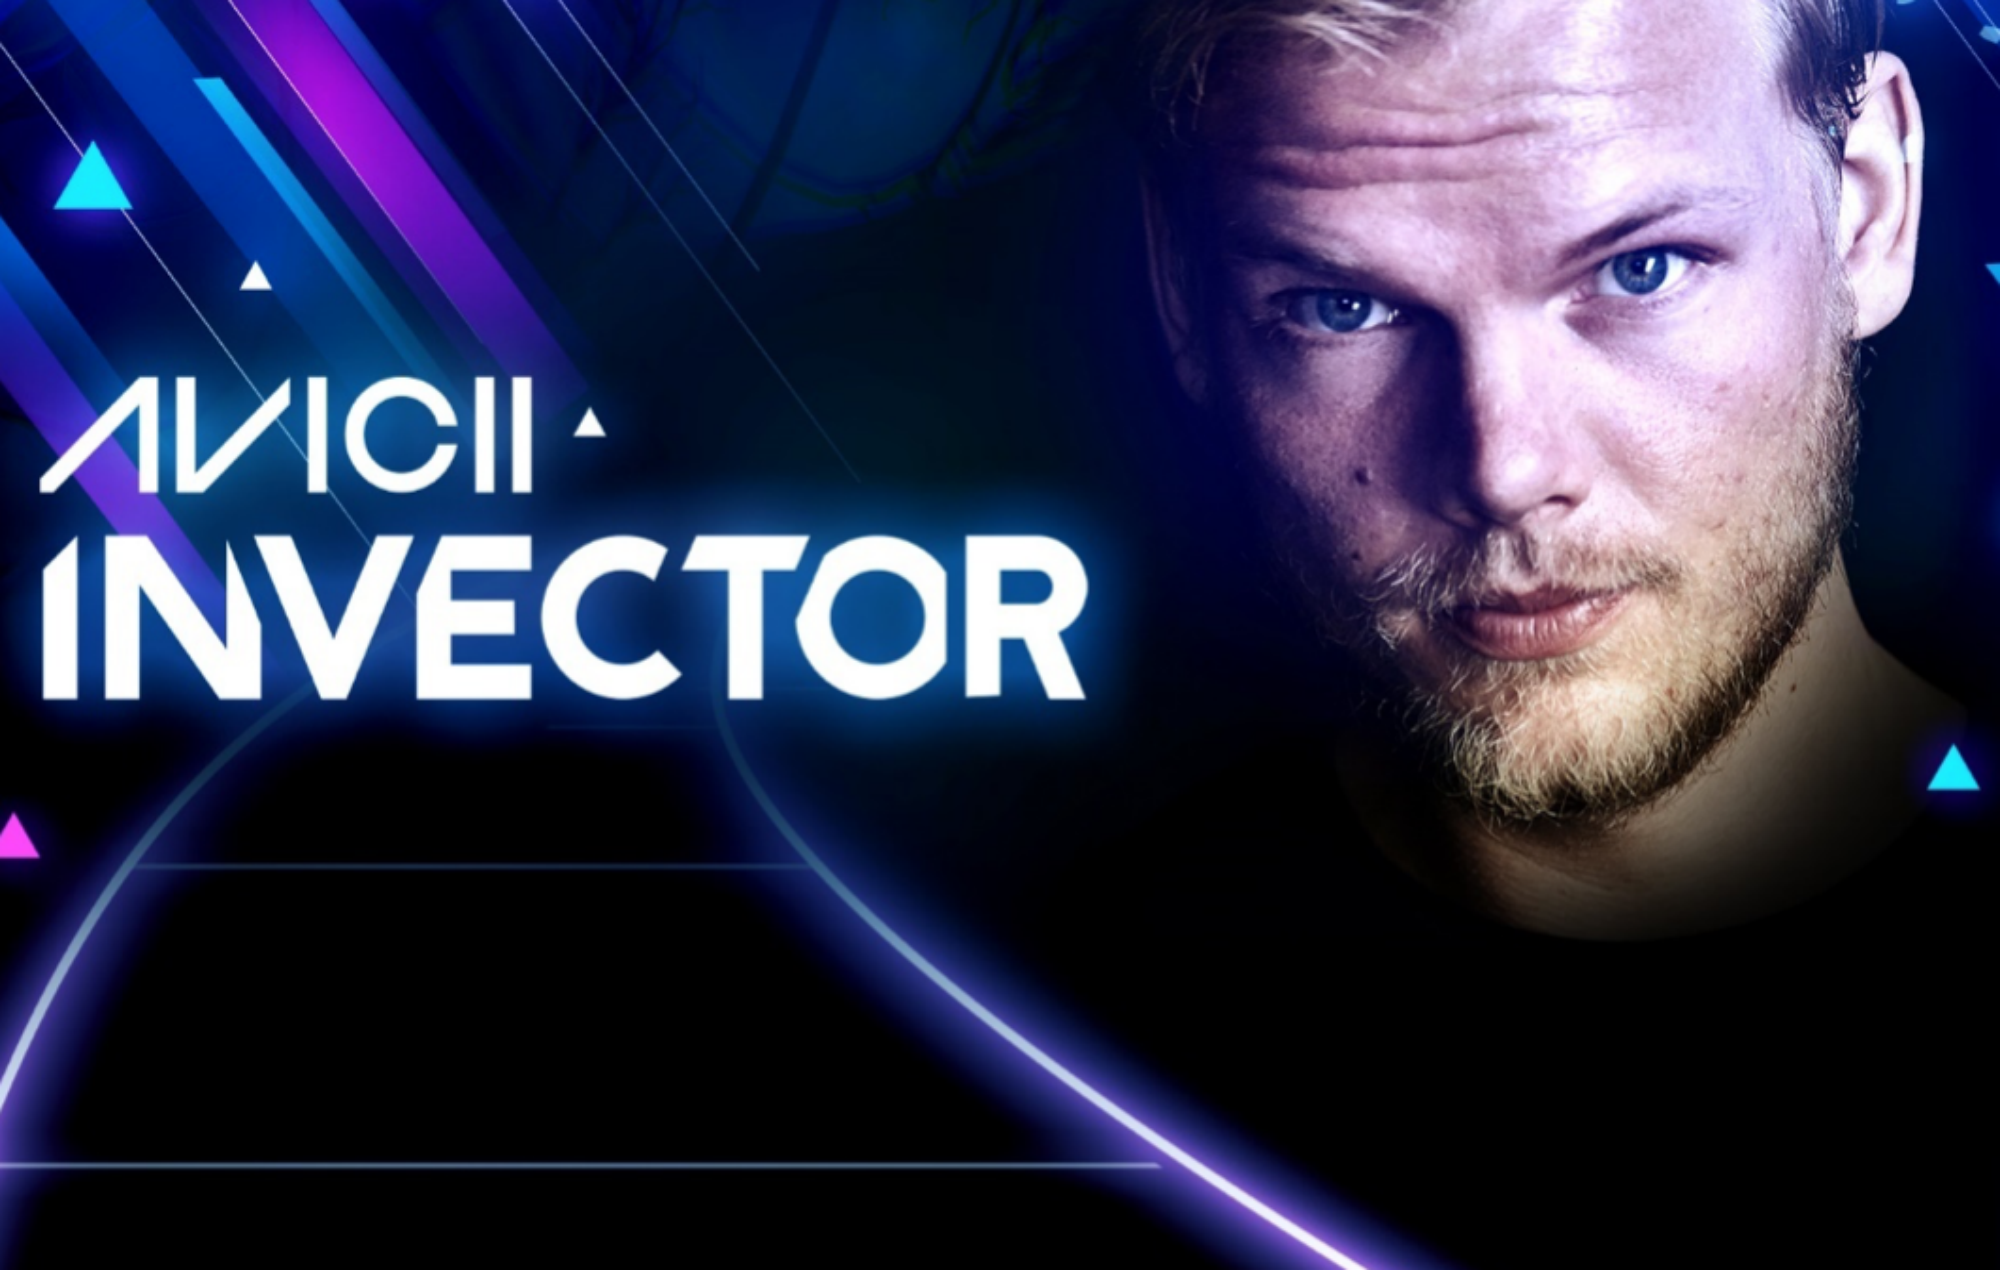 Avicii Invector Free Download